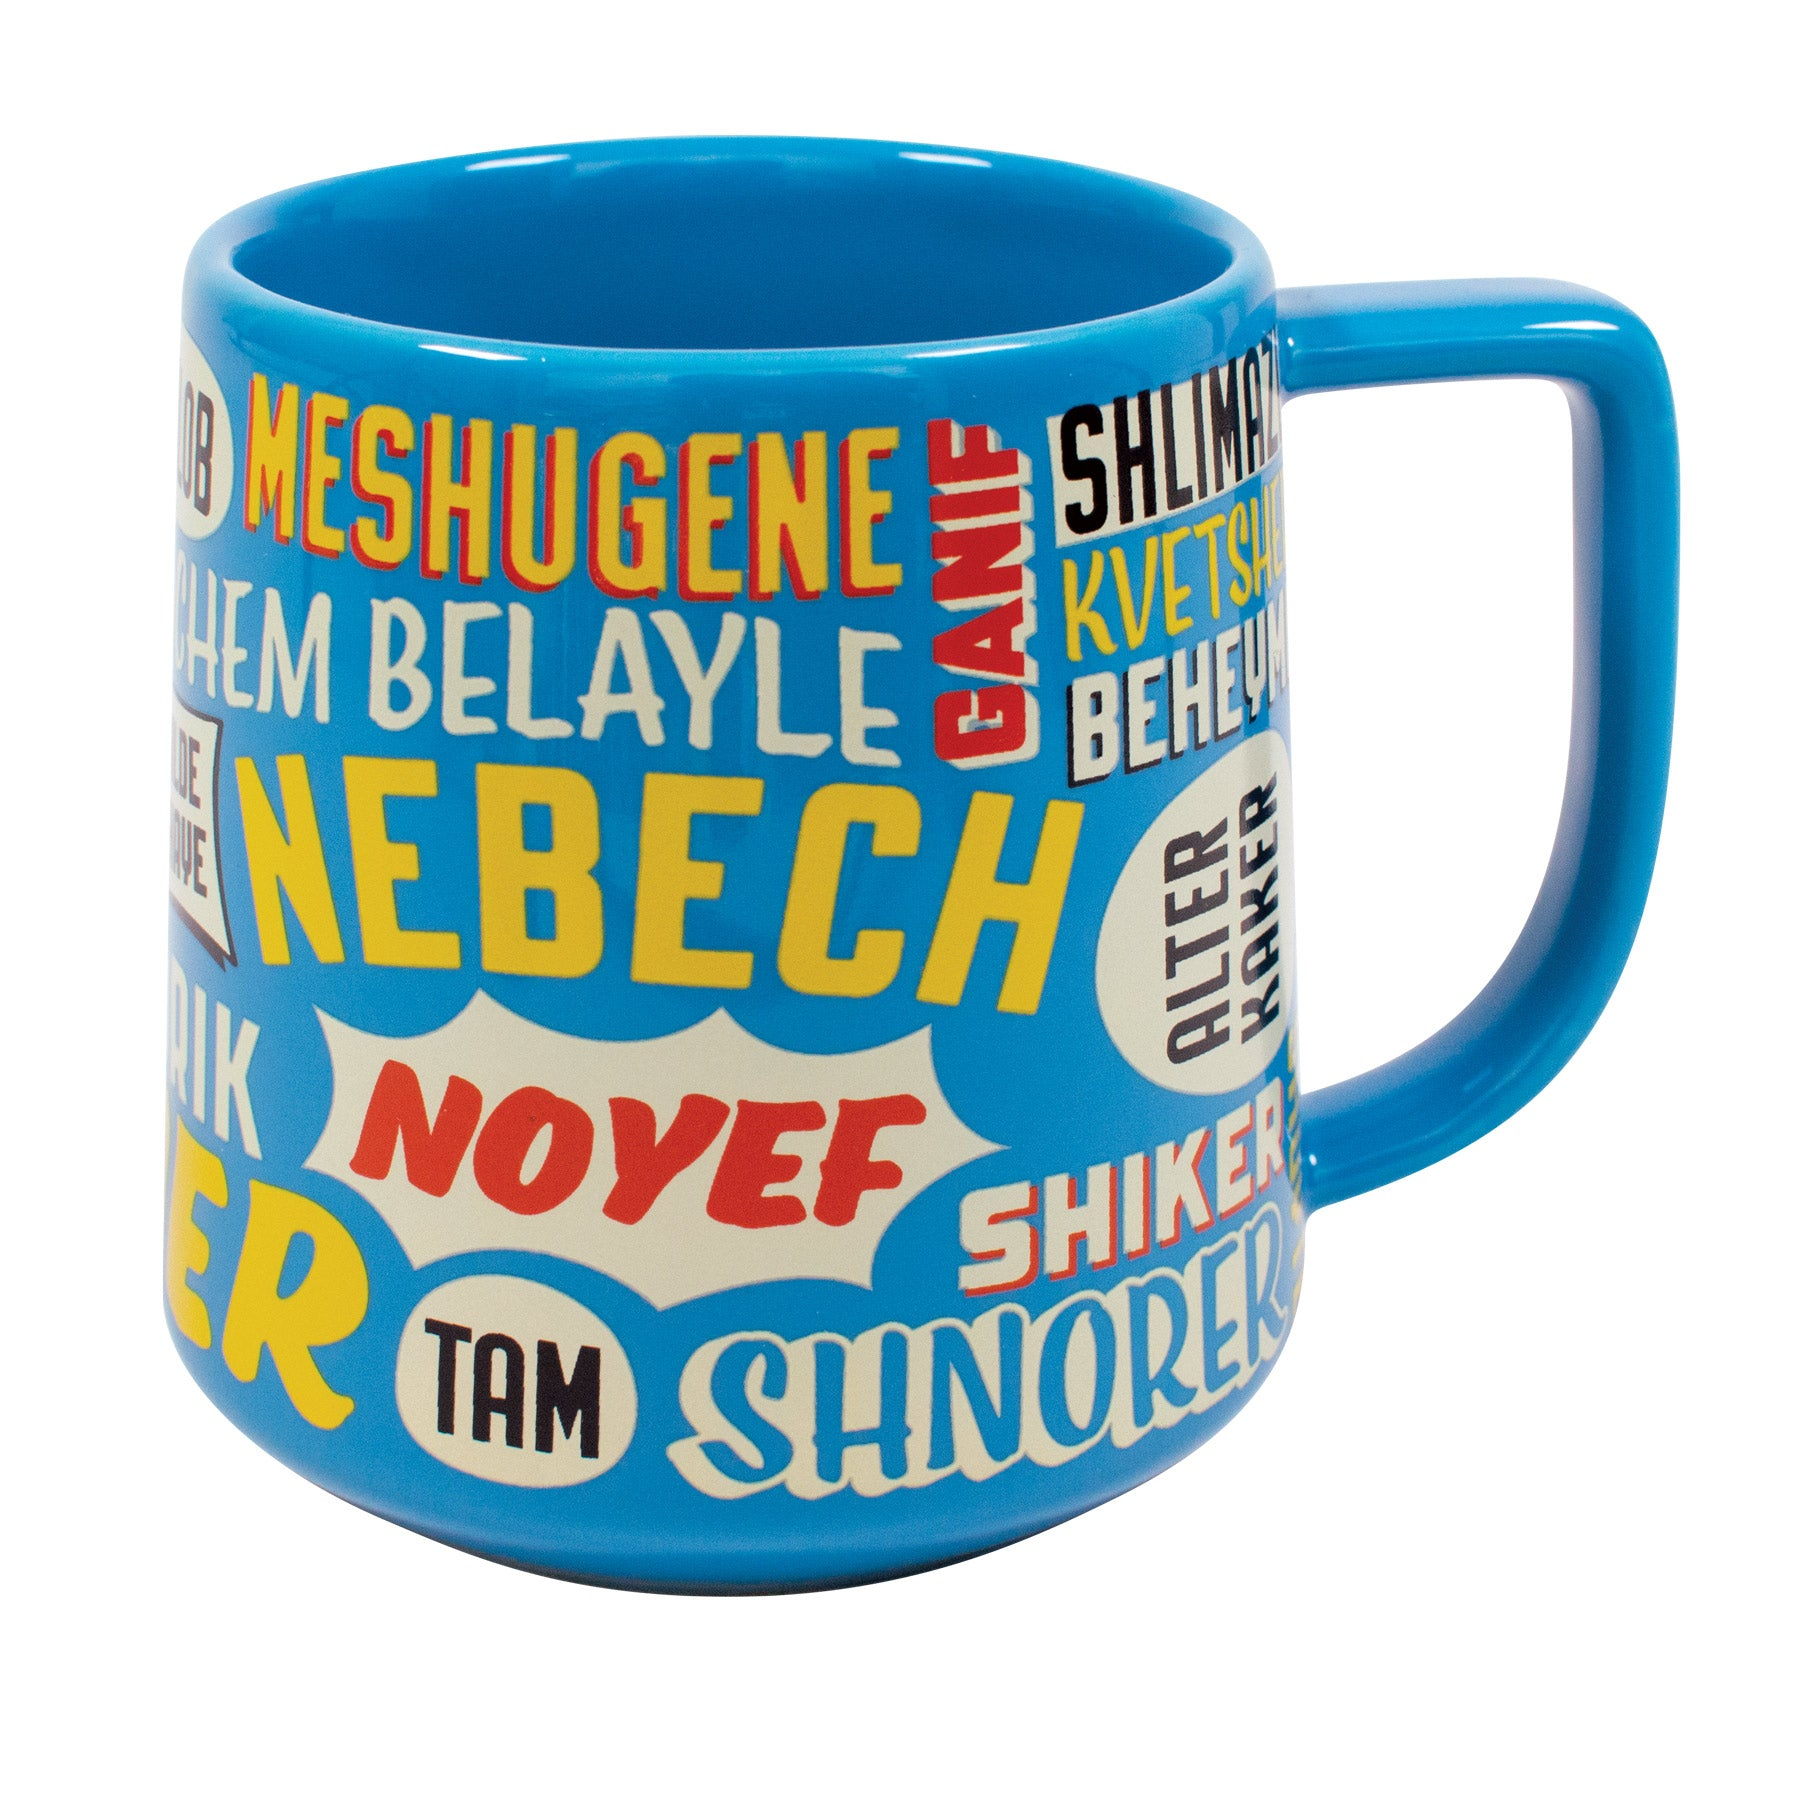 Yiddish Insults Mug